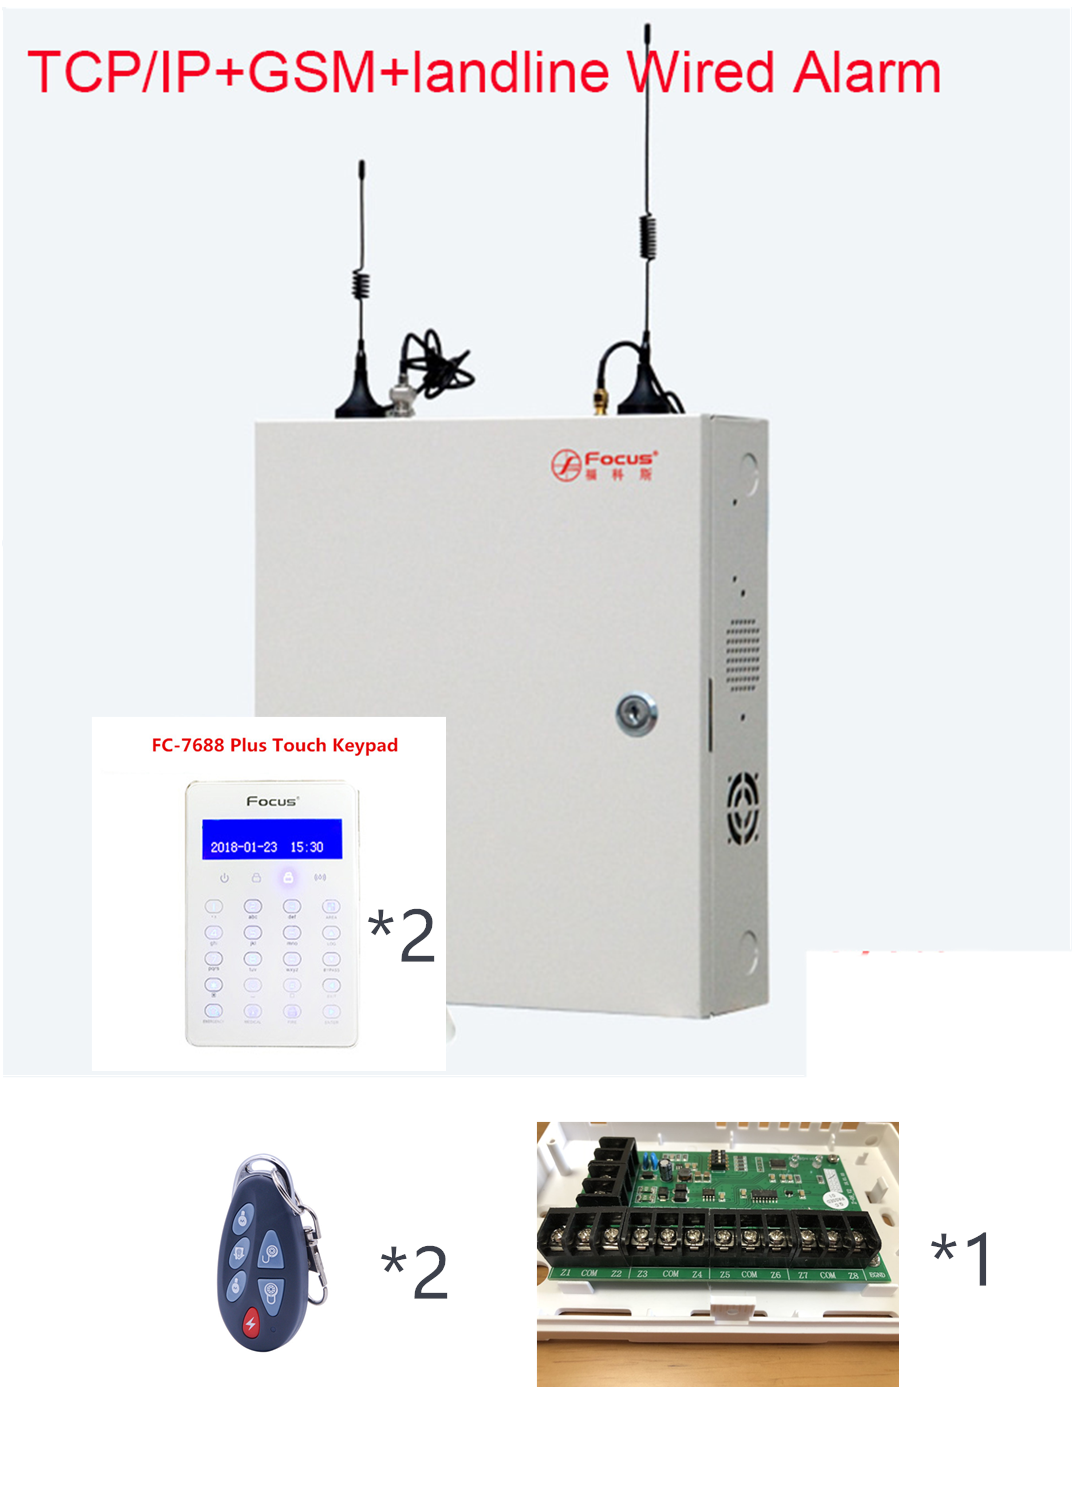 DIY Industrial Metal Box Wired Alarm TCP IP Alarm Smart Home GSM Alarm System 96 wired zone With WebIE and App Control